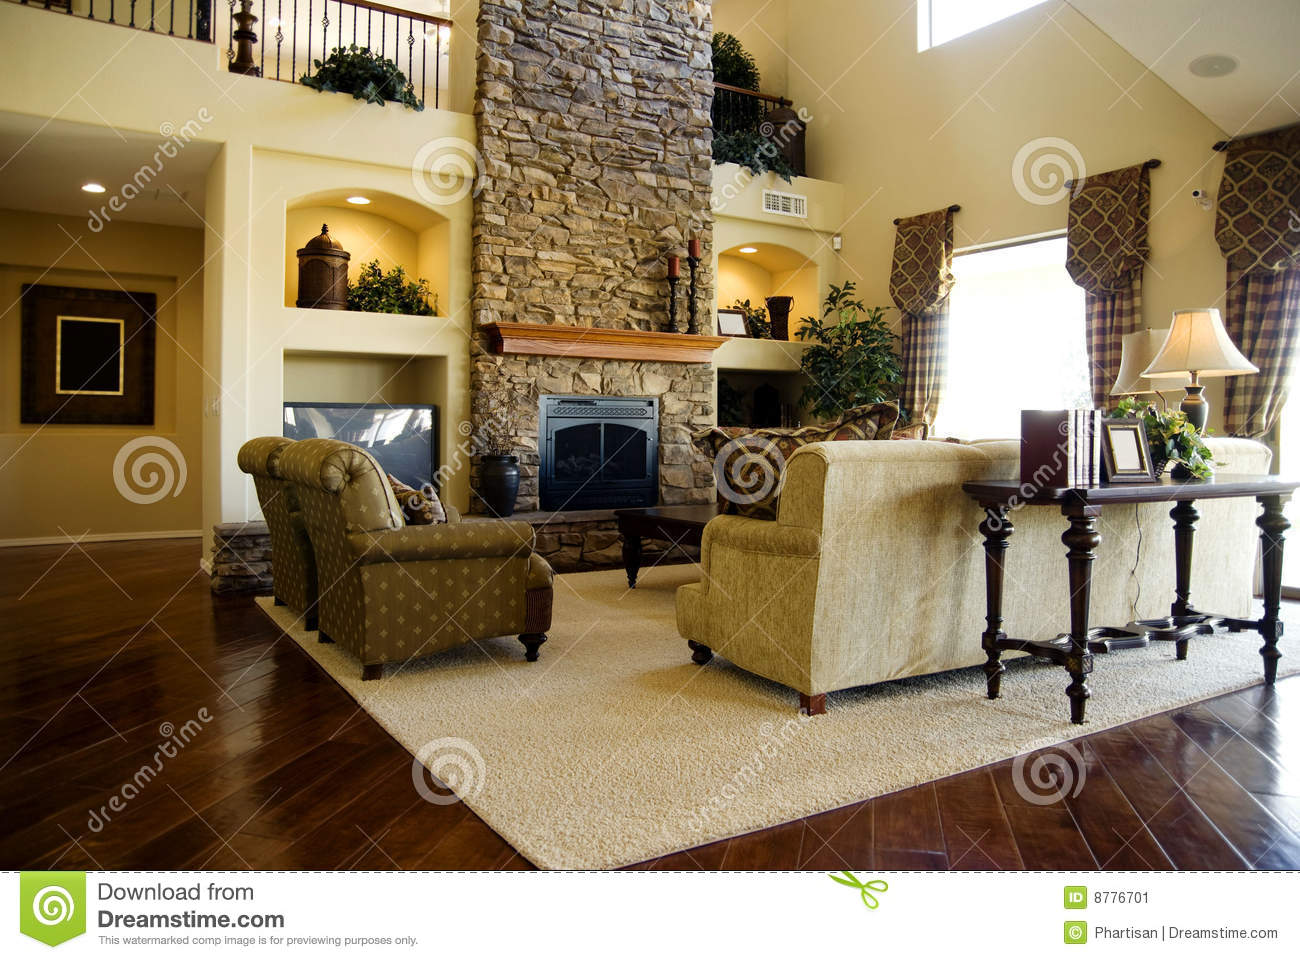 Hard Wood Flooring In Living Room Area Stock Image